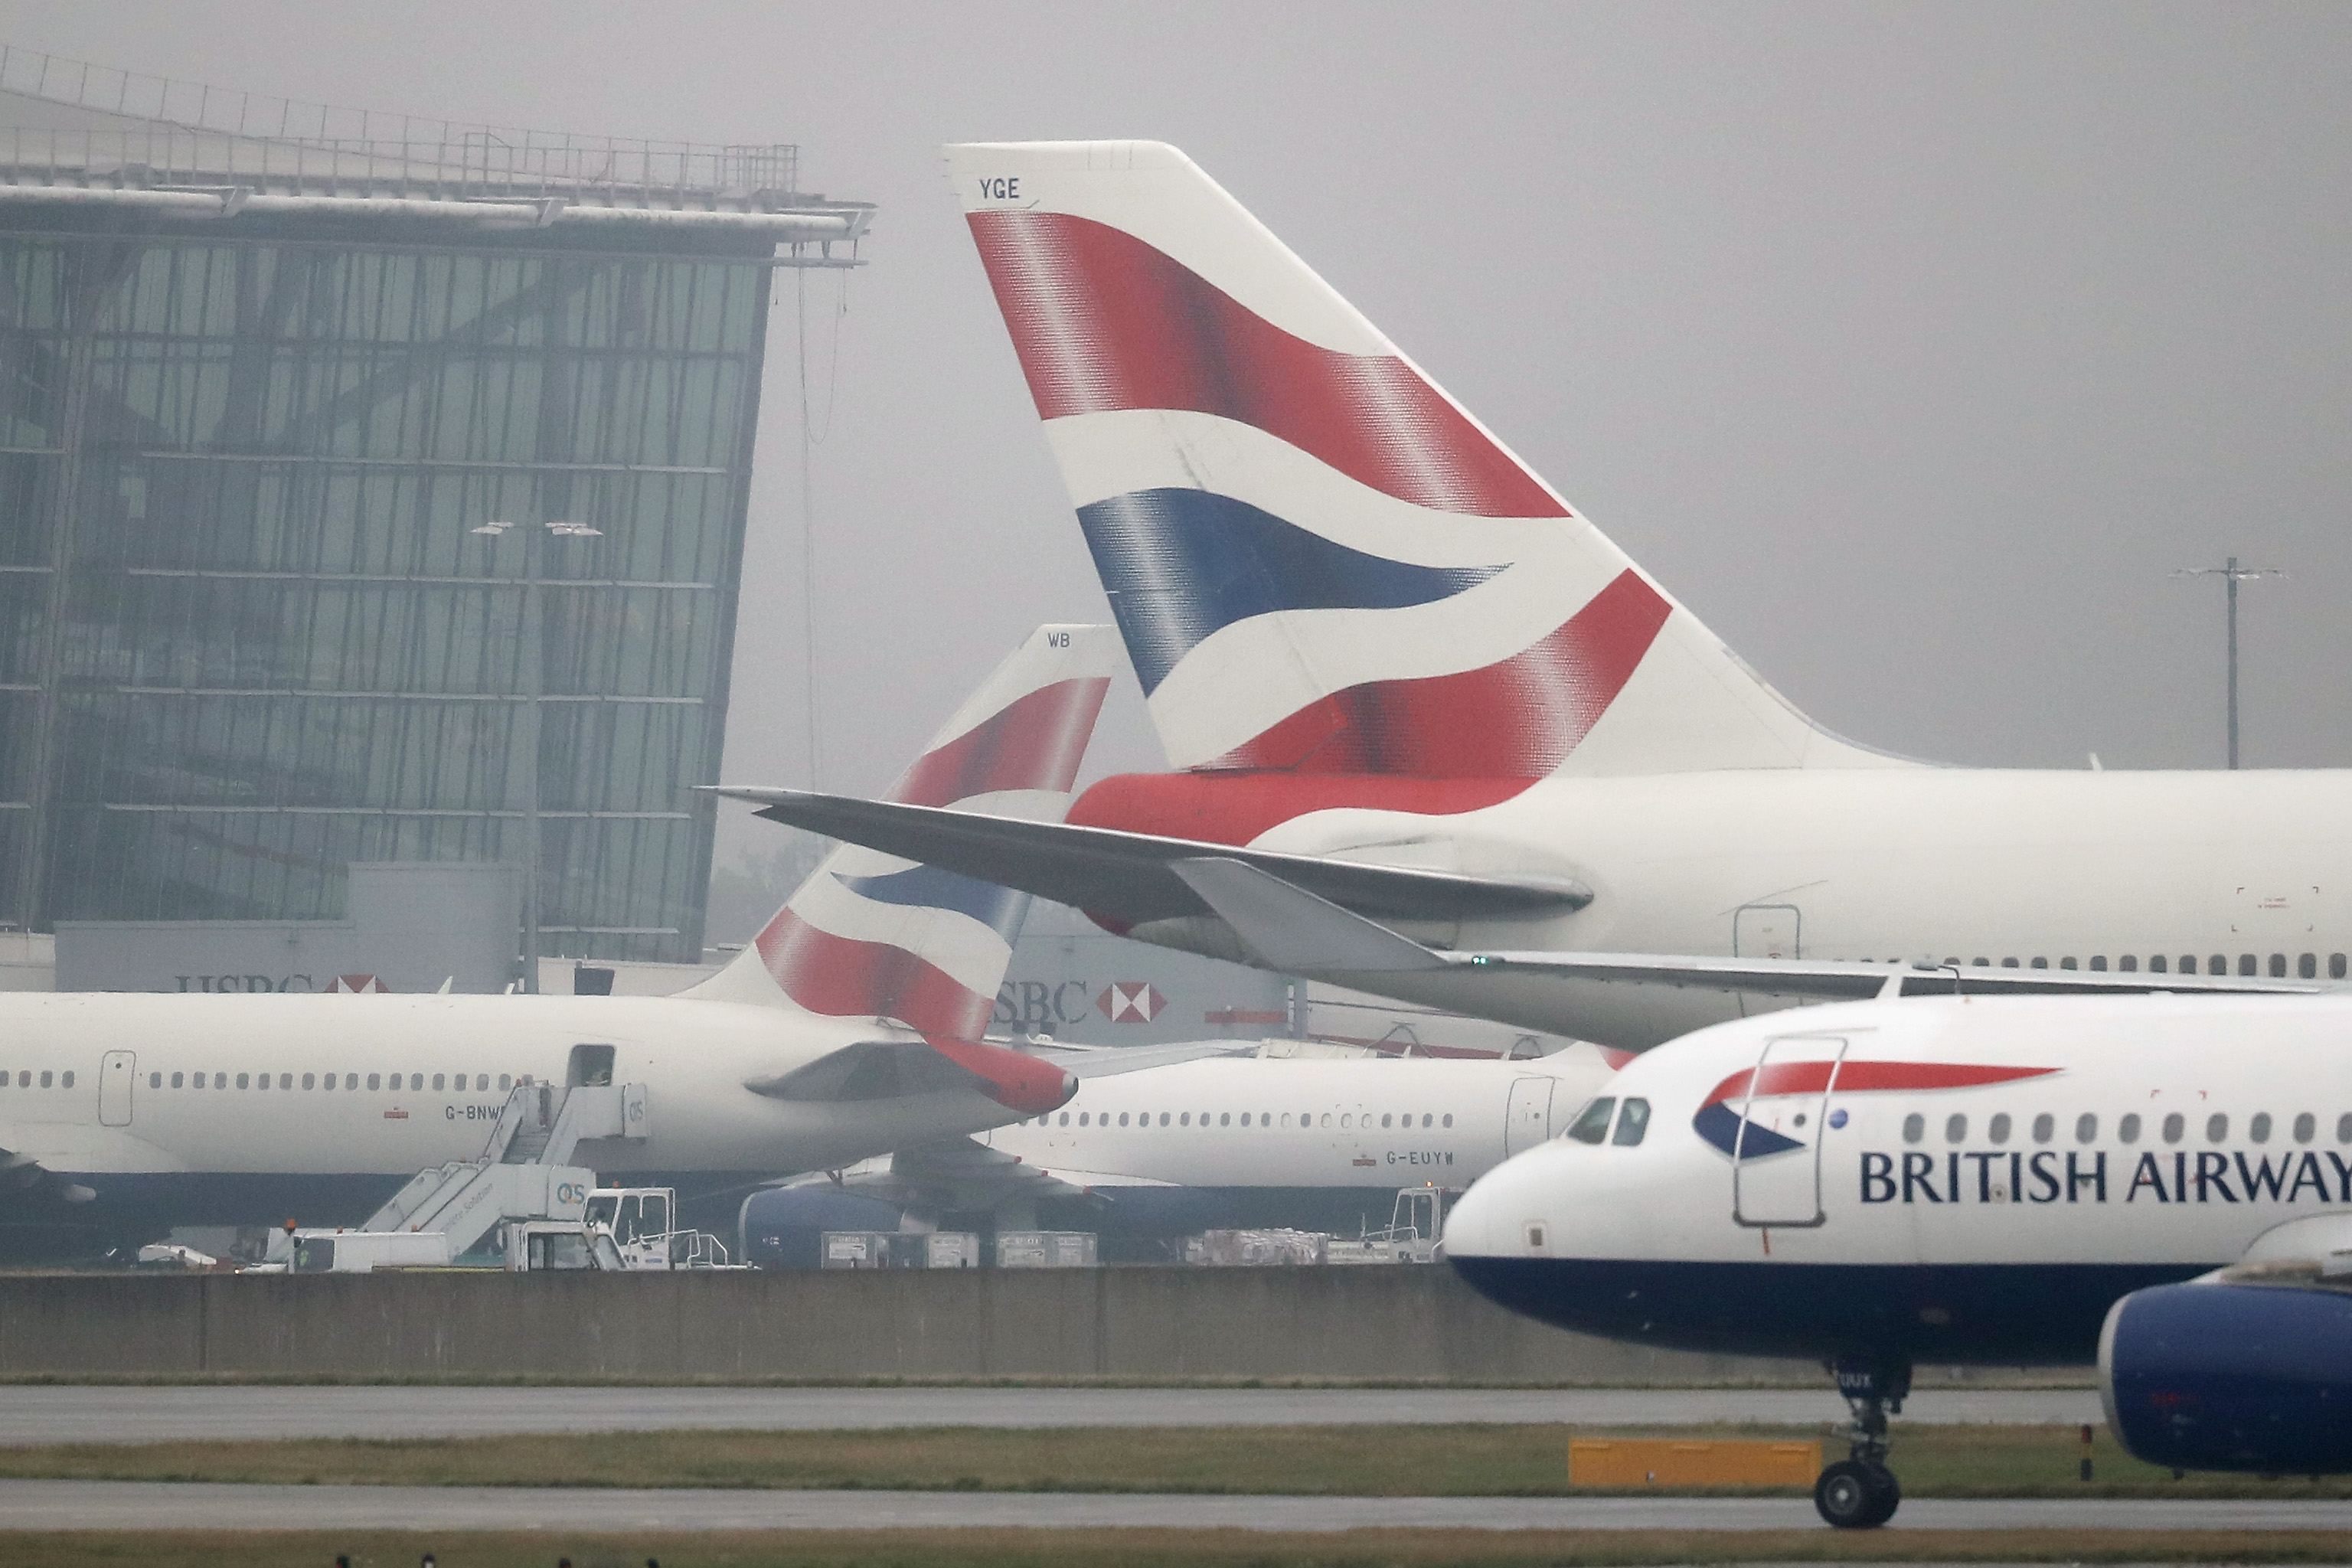 British Airways leaks data and fined R $ 145 million